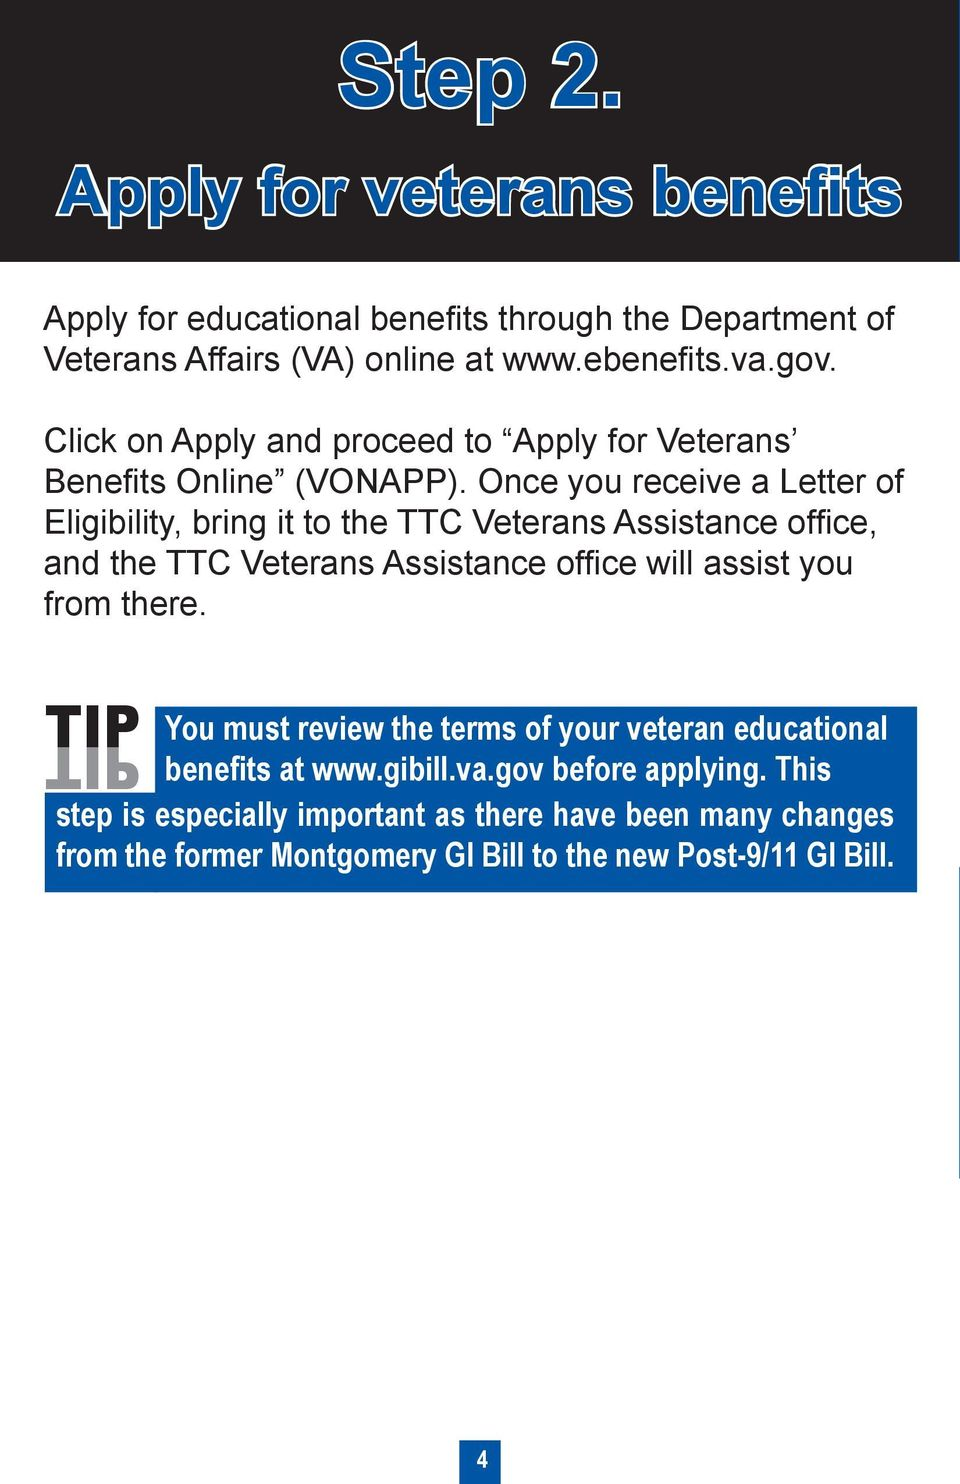 Once you receive a Letter of Eligibility, bring it to the TTC Veterans Assistance office, and the TTC Veterans Assistance office will assist you from